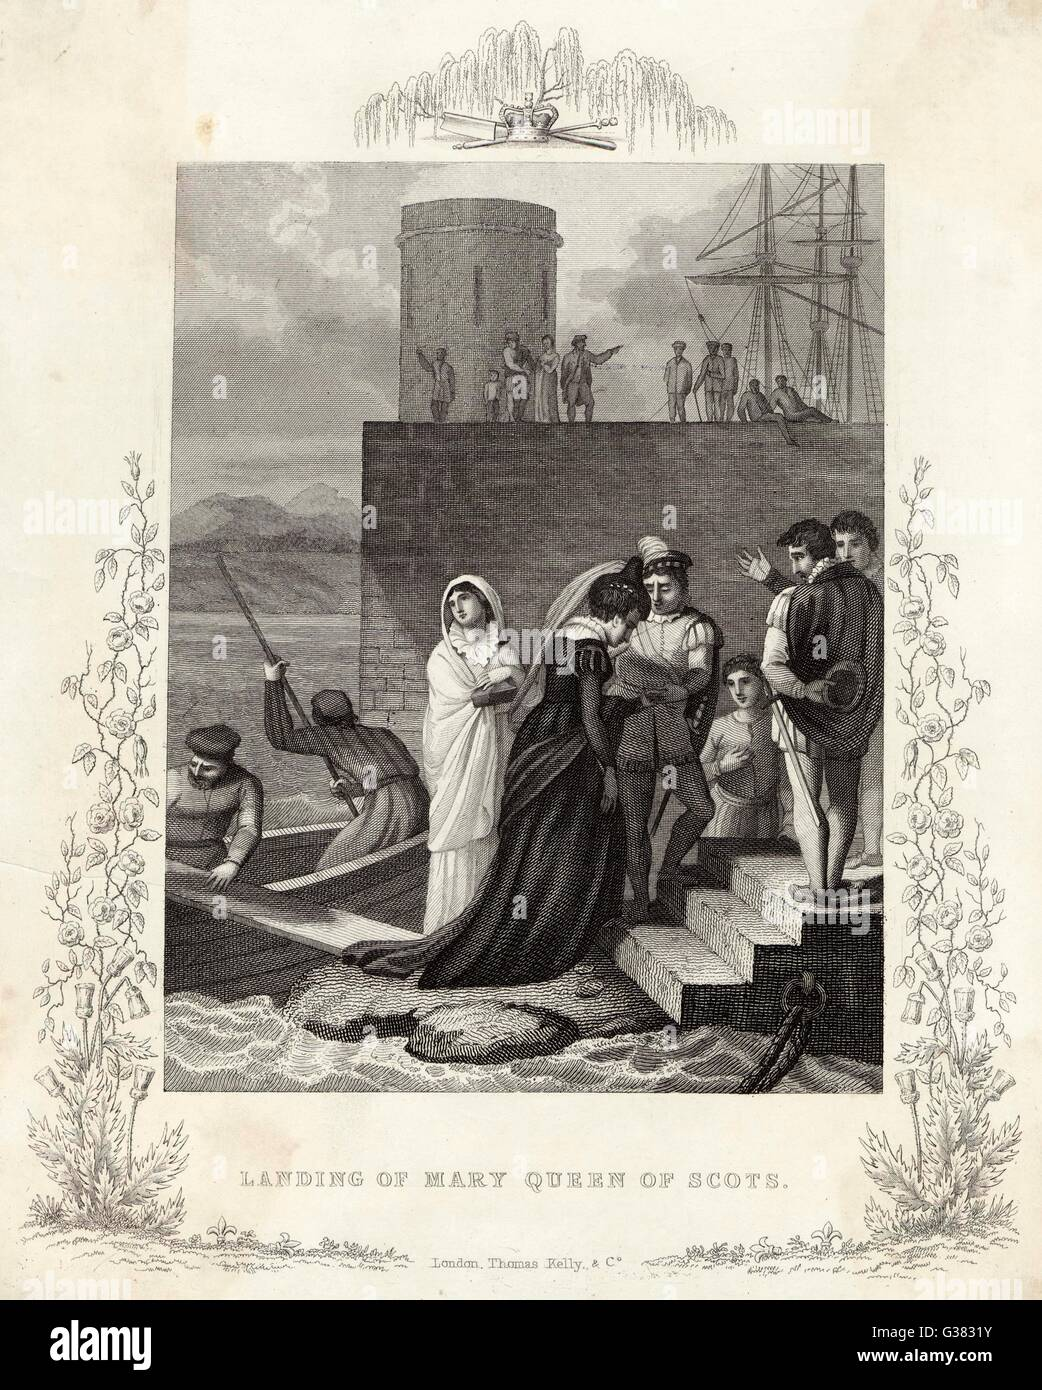 Mary Queen of Scots lands in  Scotland         Date: 1561 Stock Photo